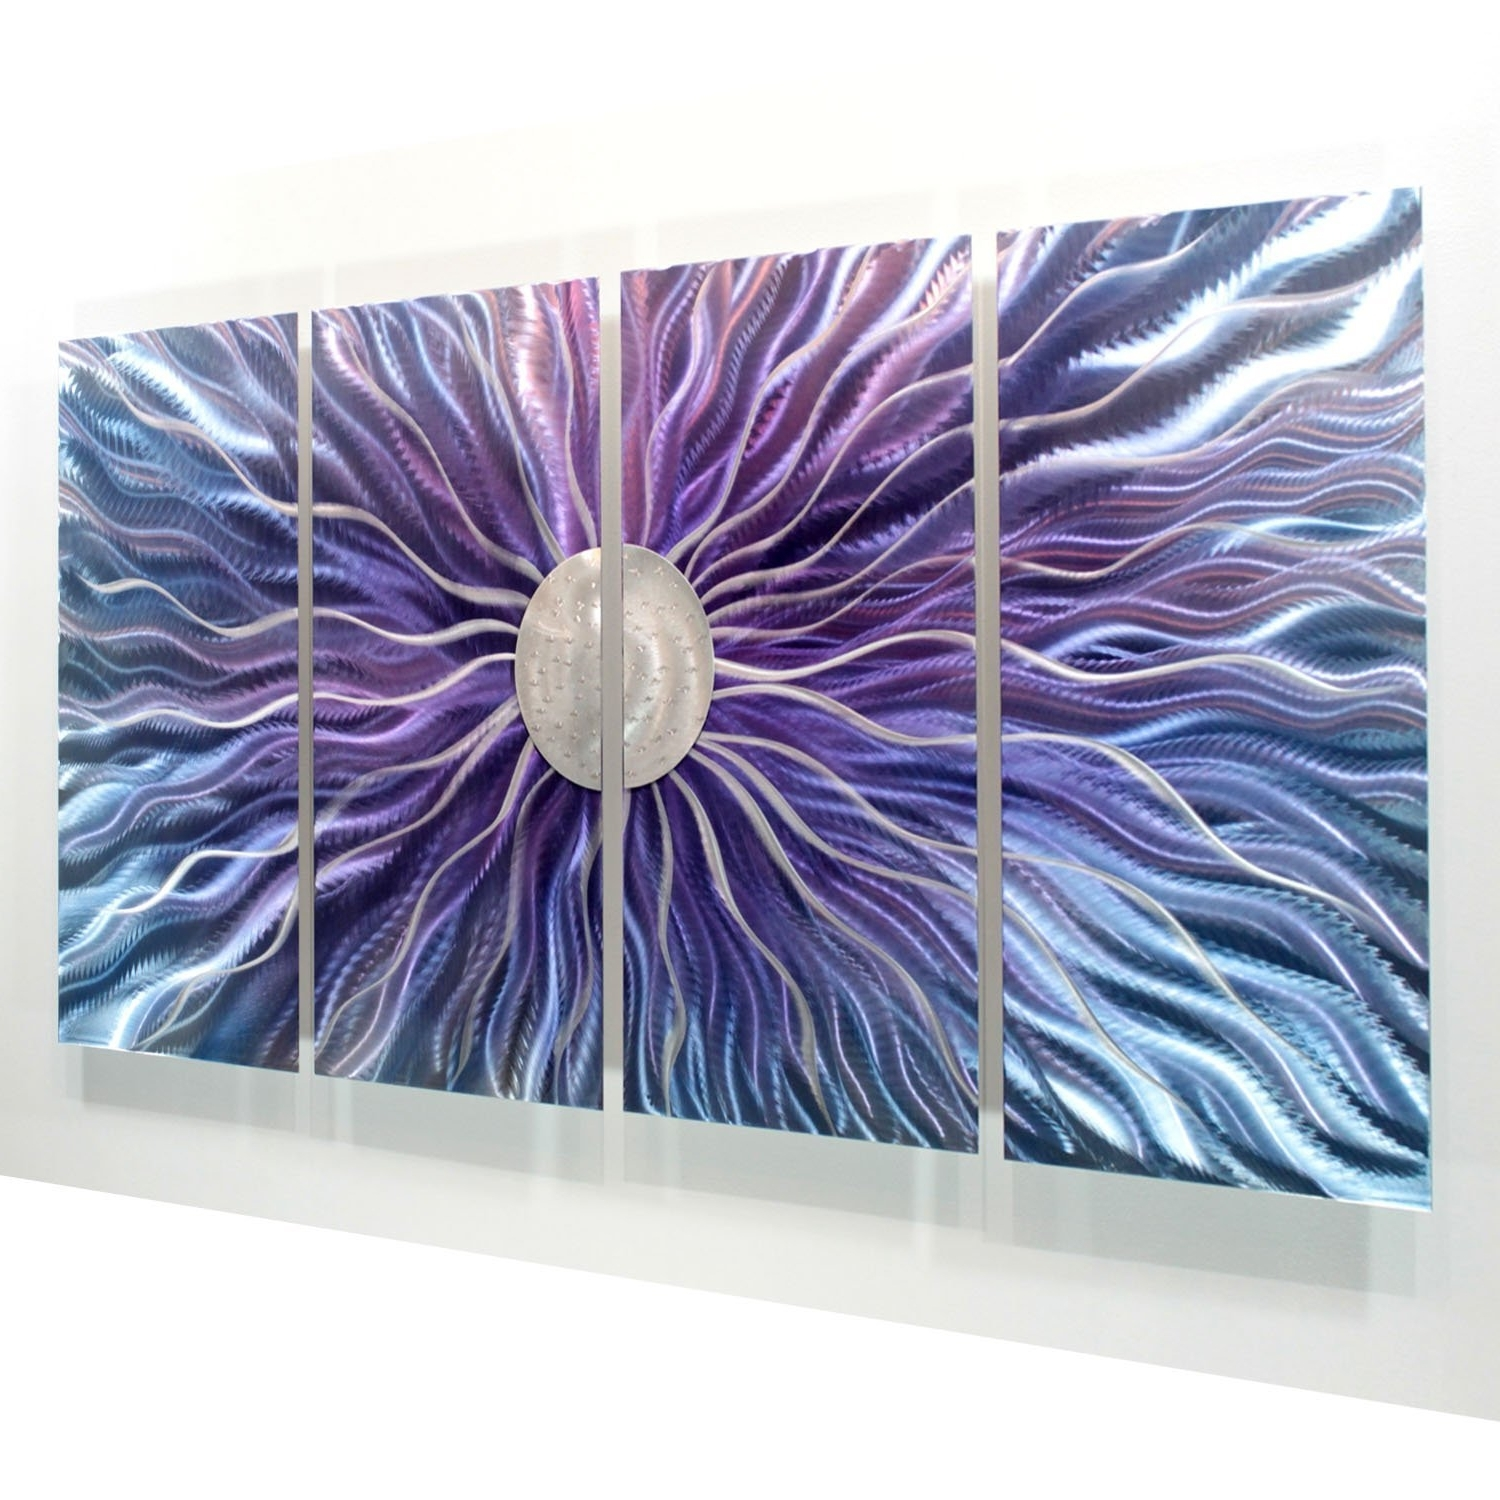 Latest Abstract Metal Wall Art Panels With Amazon: Large Blue, Purple, And Silver Metal Wall Art Painting (Gallery 13 of 15)